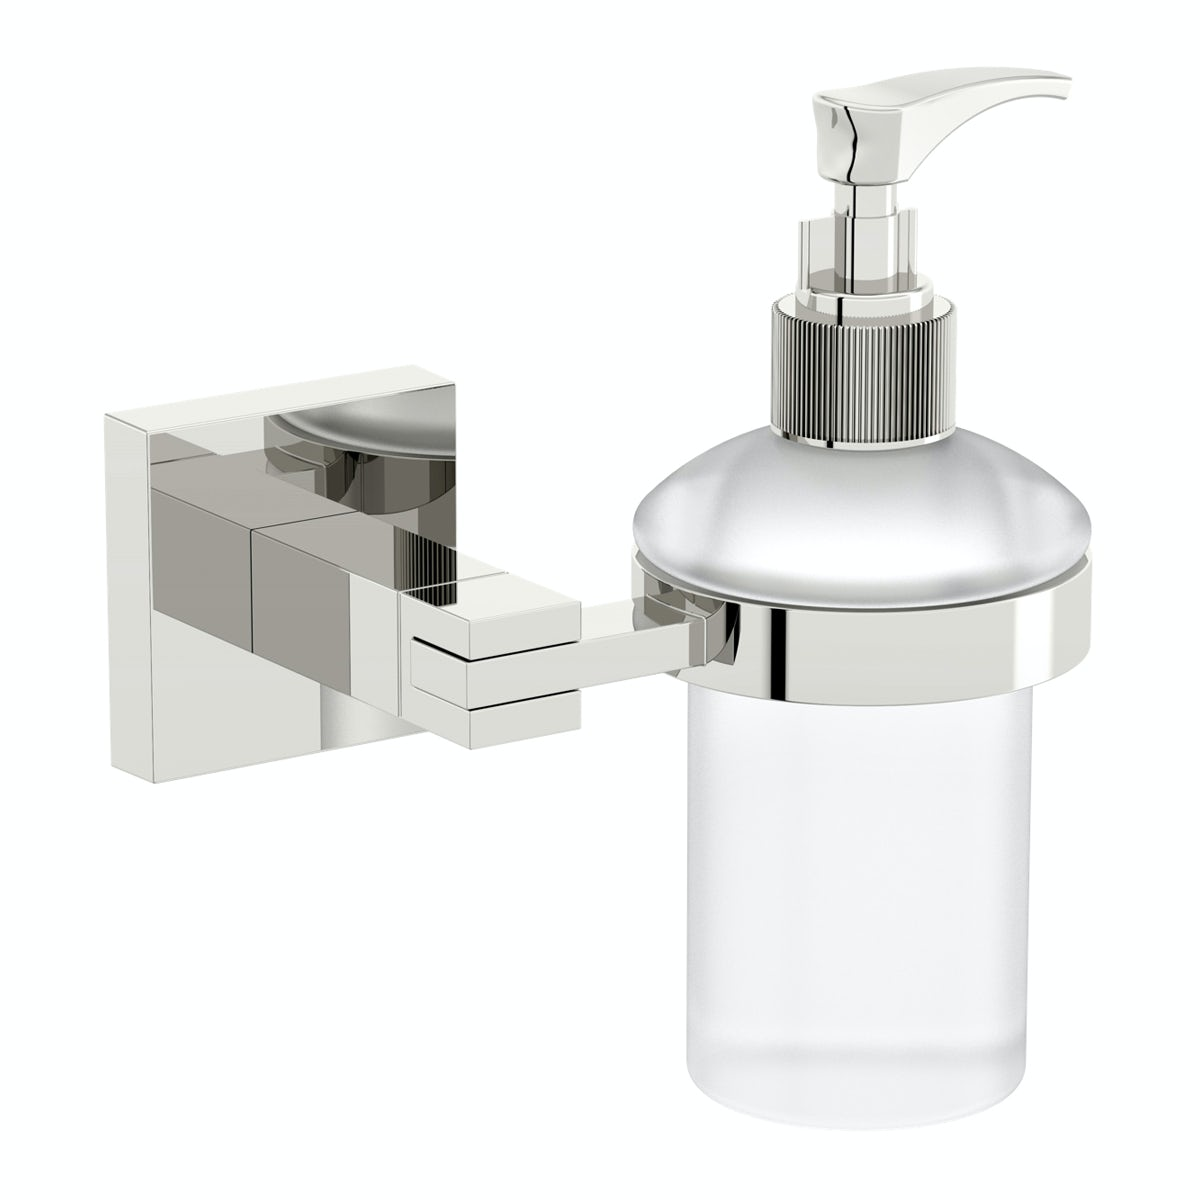 Orchard Flex soap dispenser